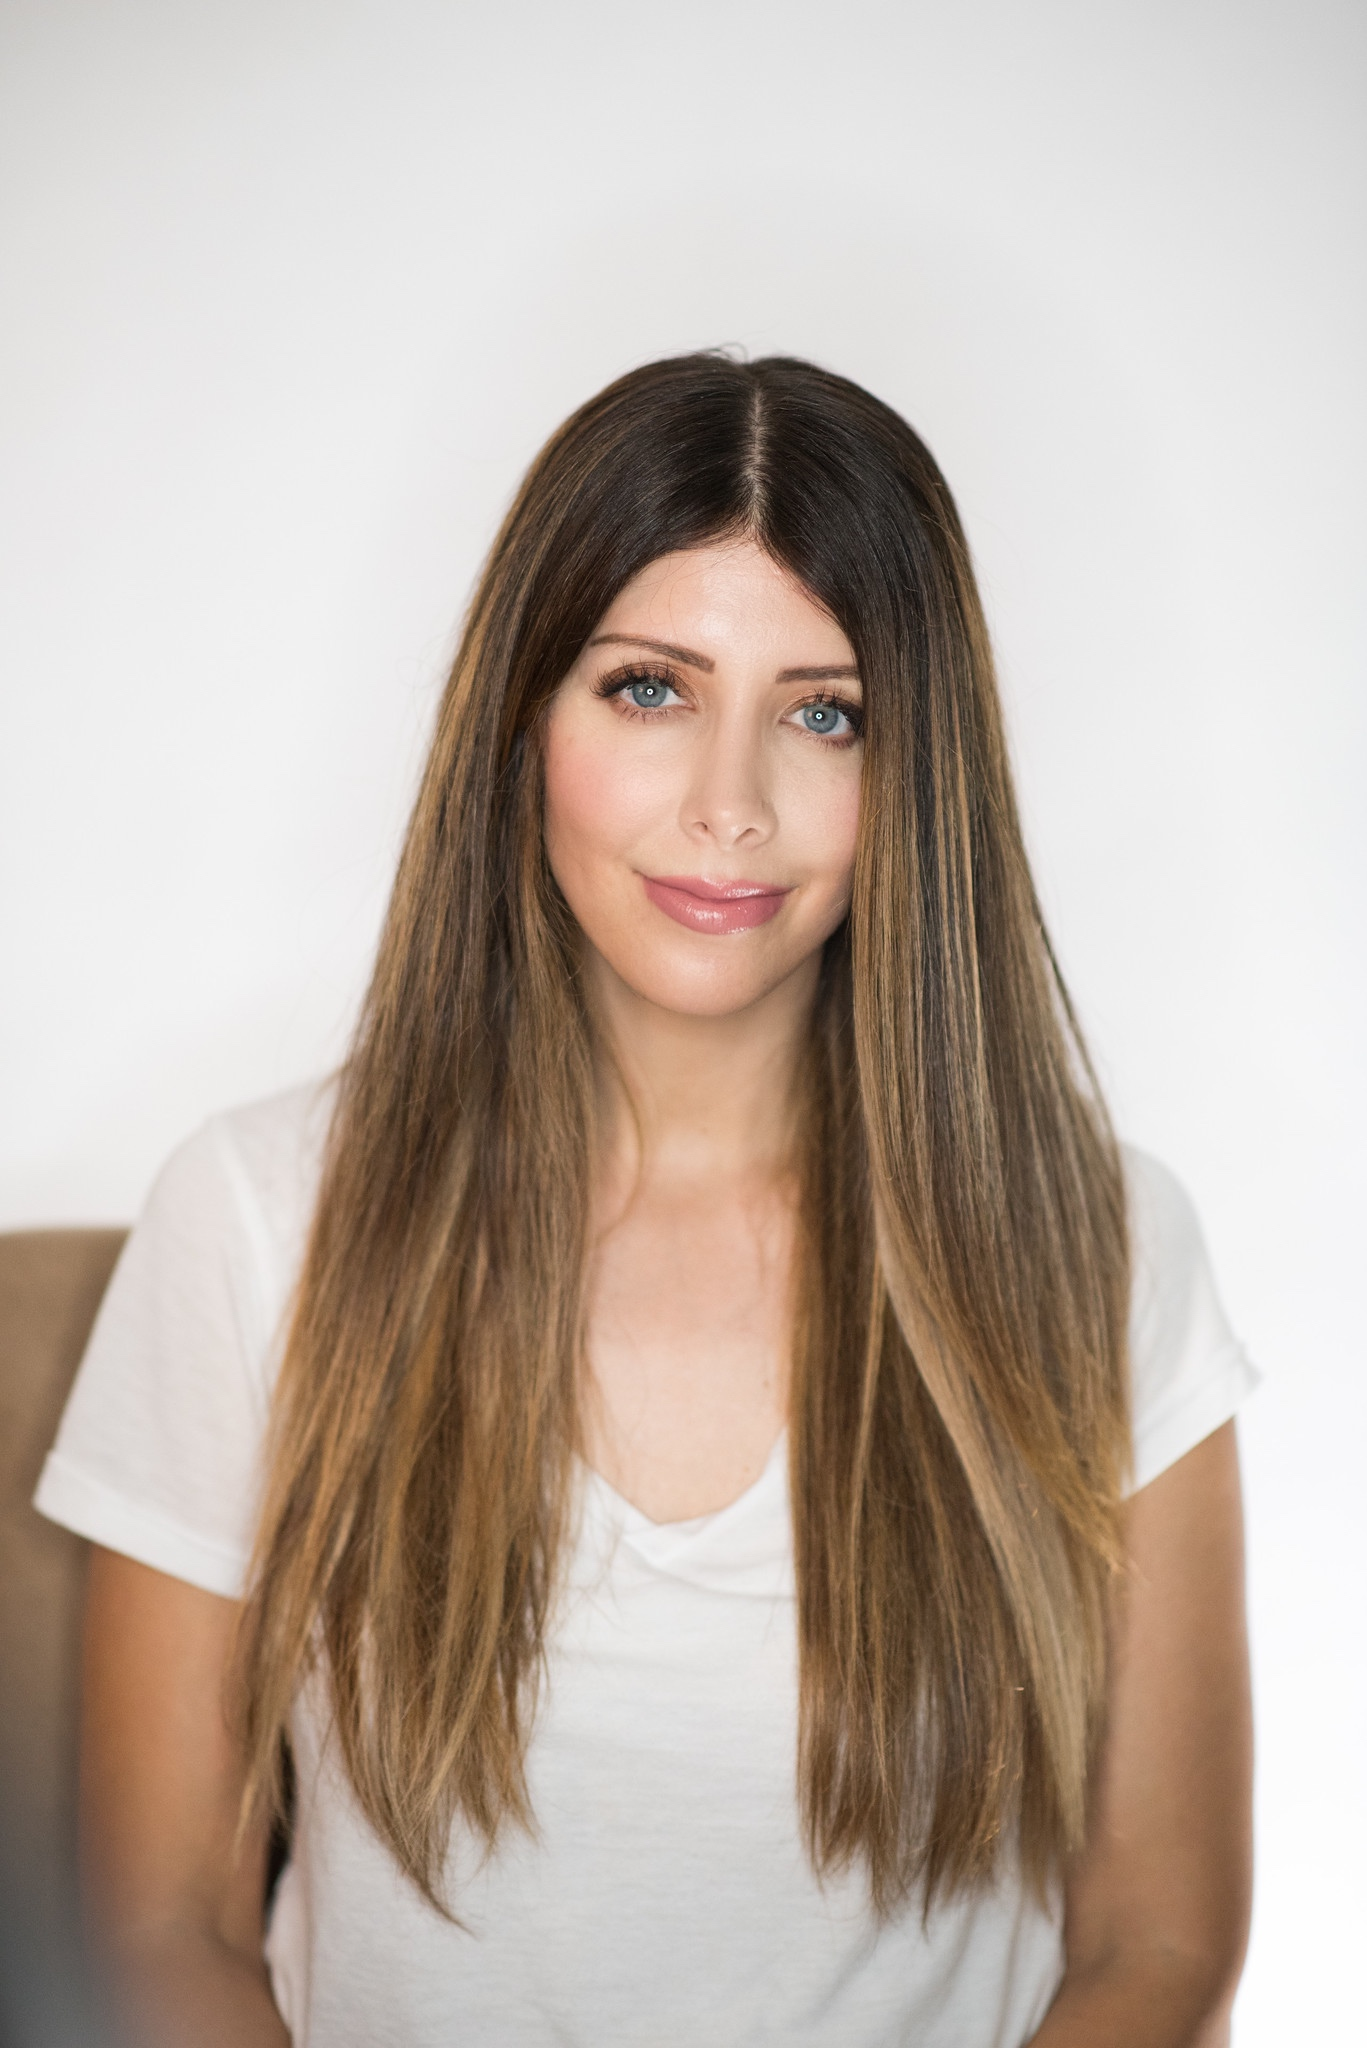 Silky Smooth Straight Hair With Volume The Girl In The